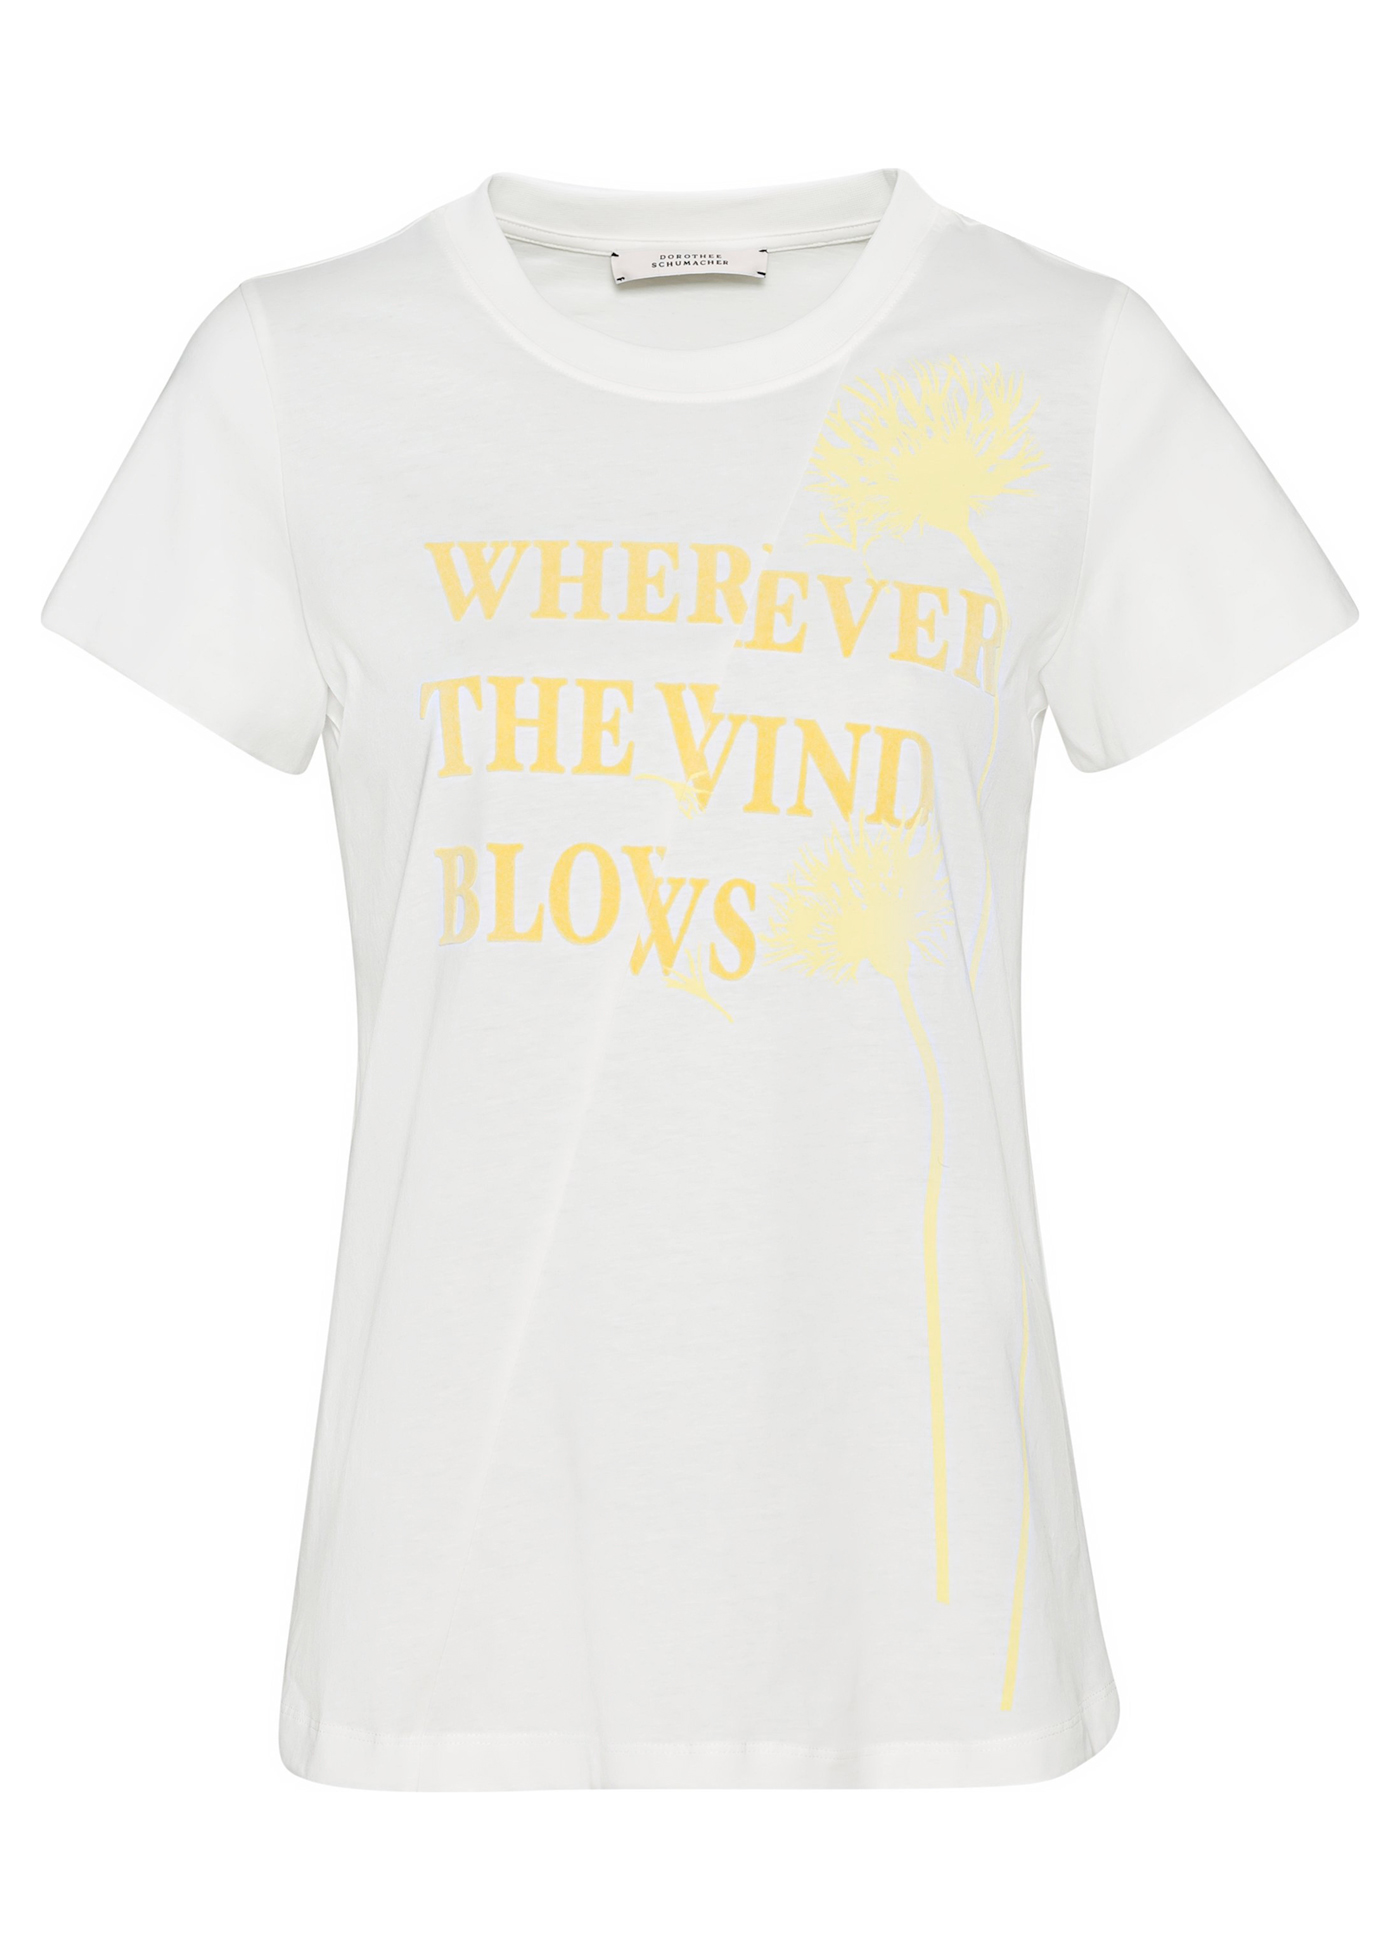 WHEREVER THE WIND BLOWS shirt image number 0